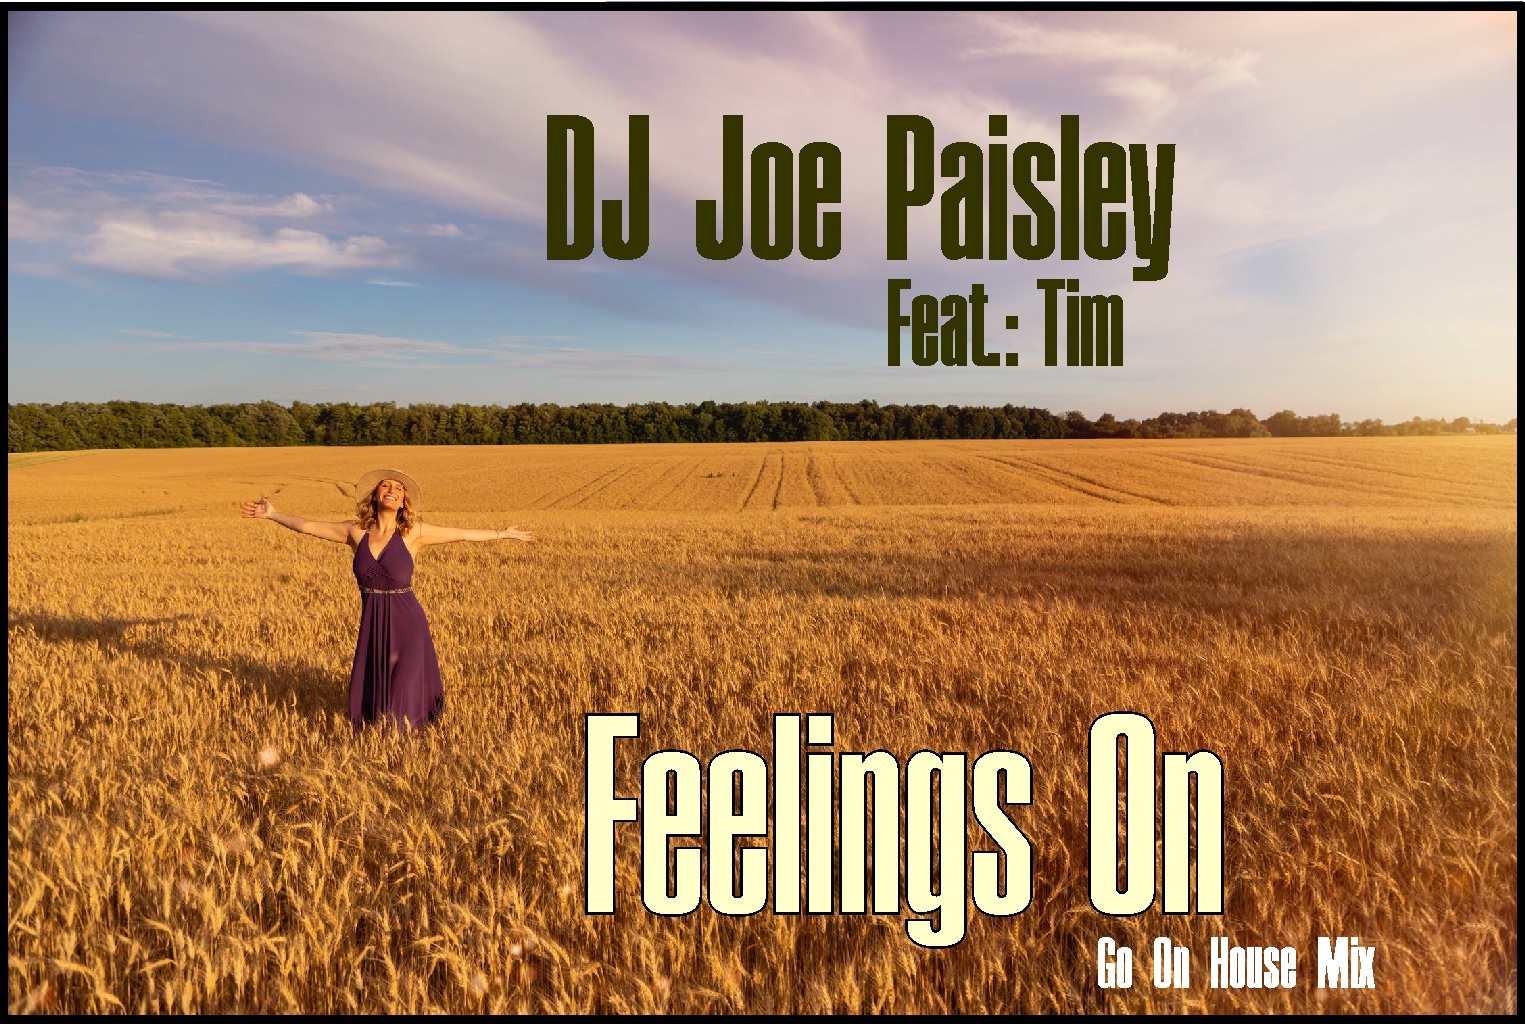 DJ Joe Paisley – Feelings On